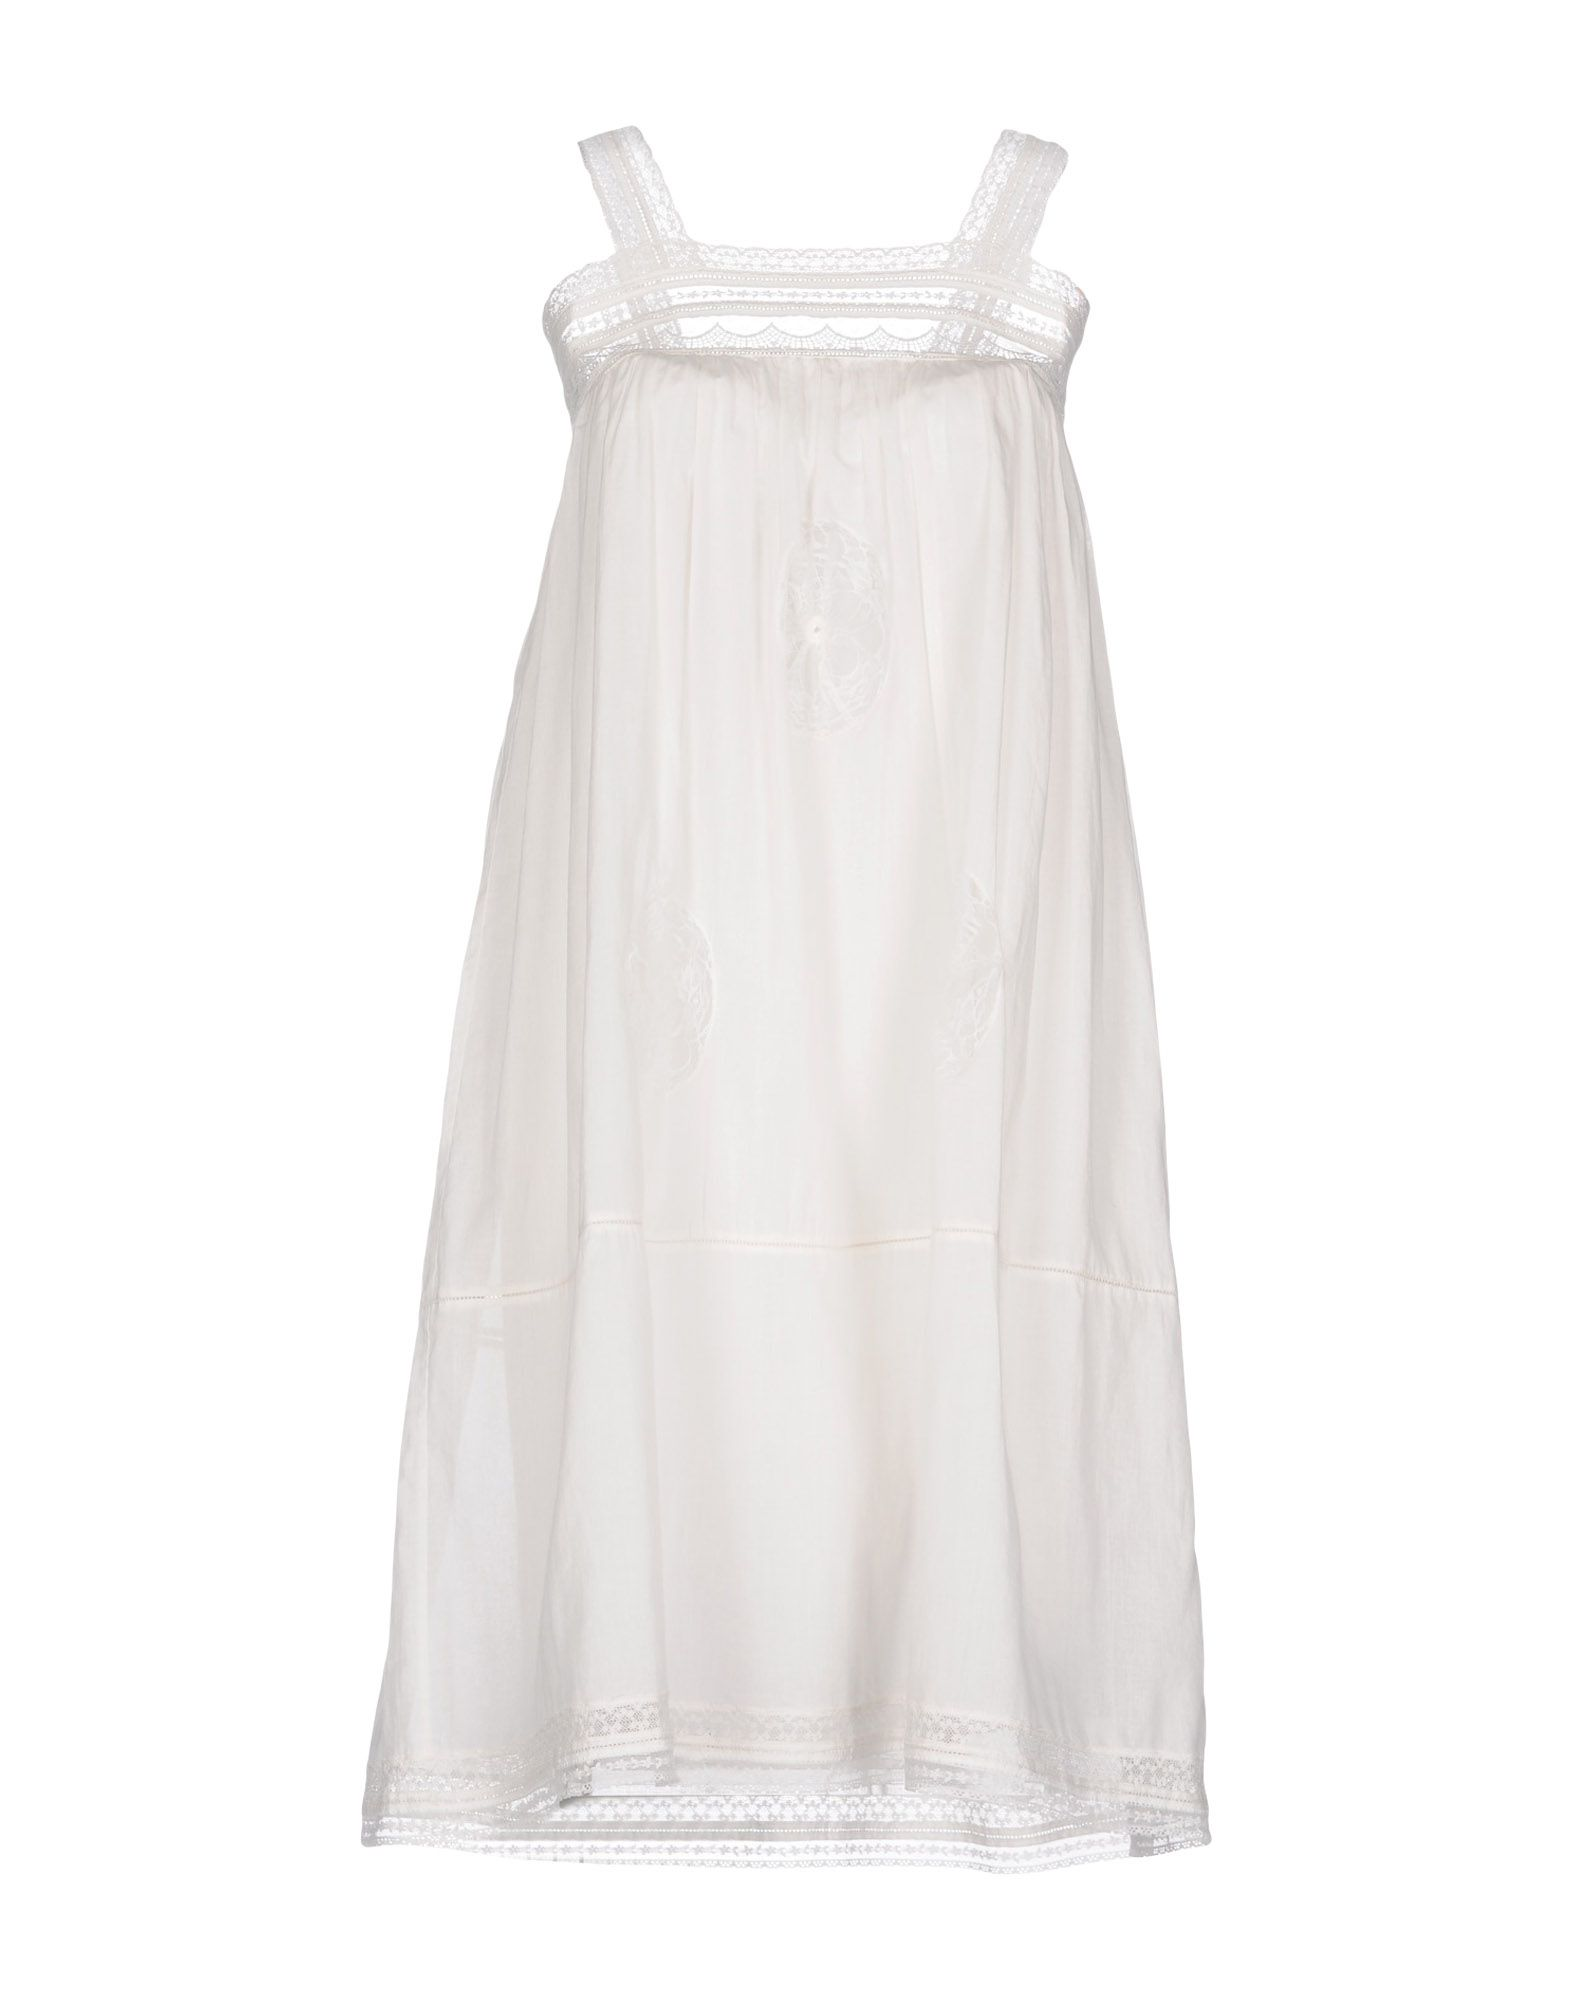 LAURENCE BRAS Knee-Length Dress in White